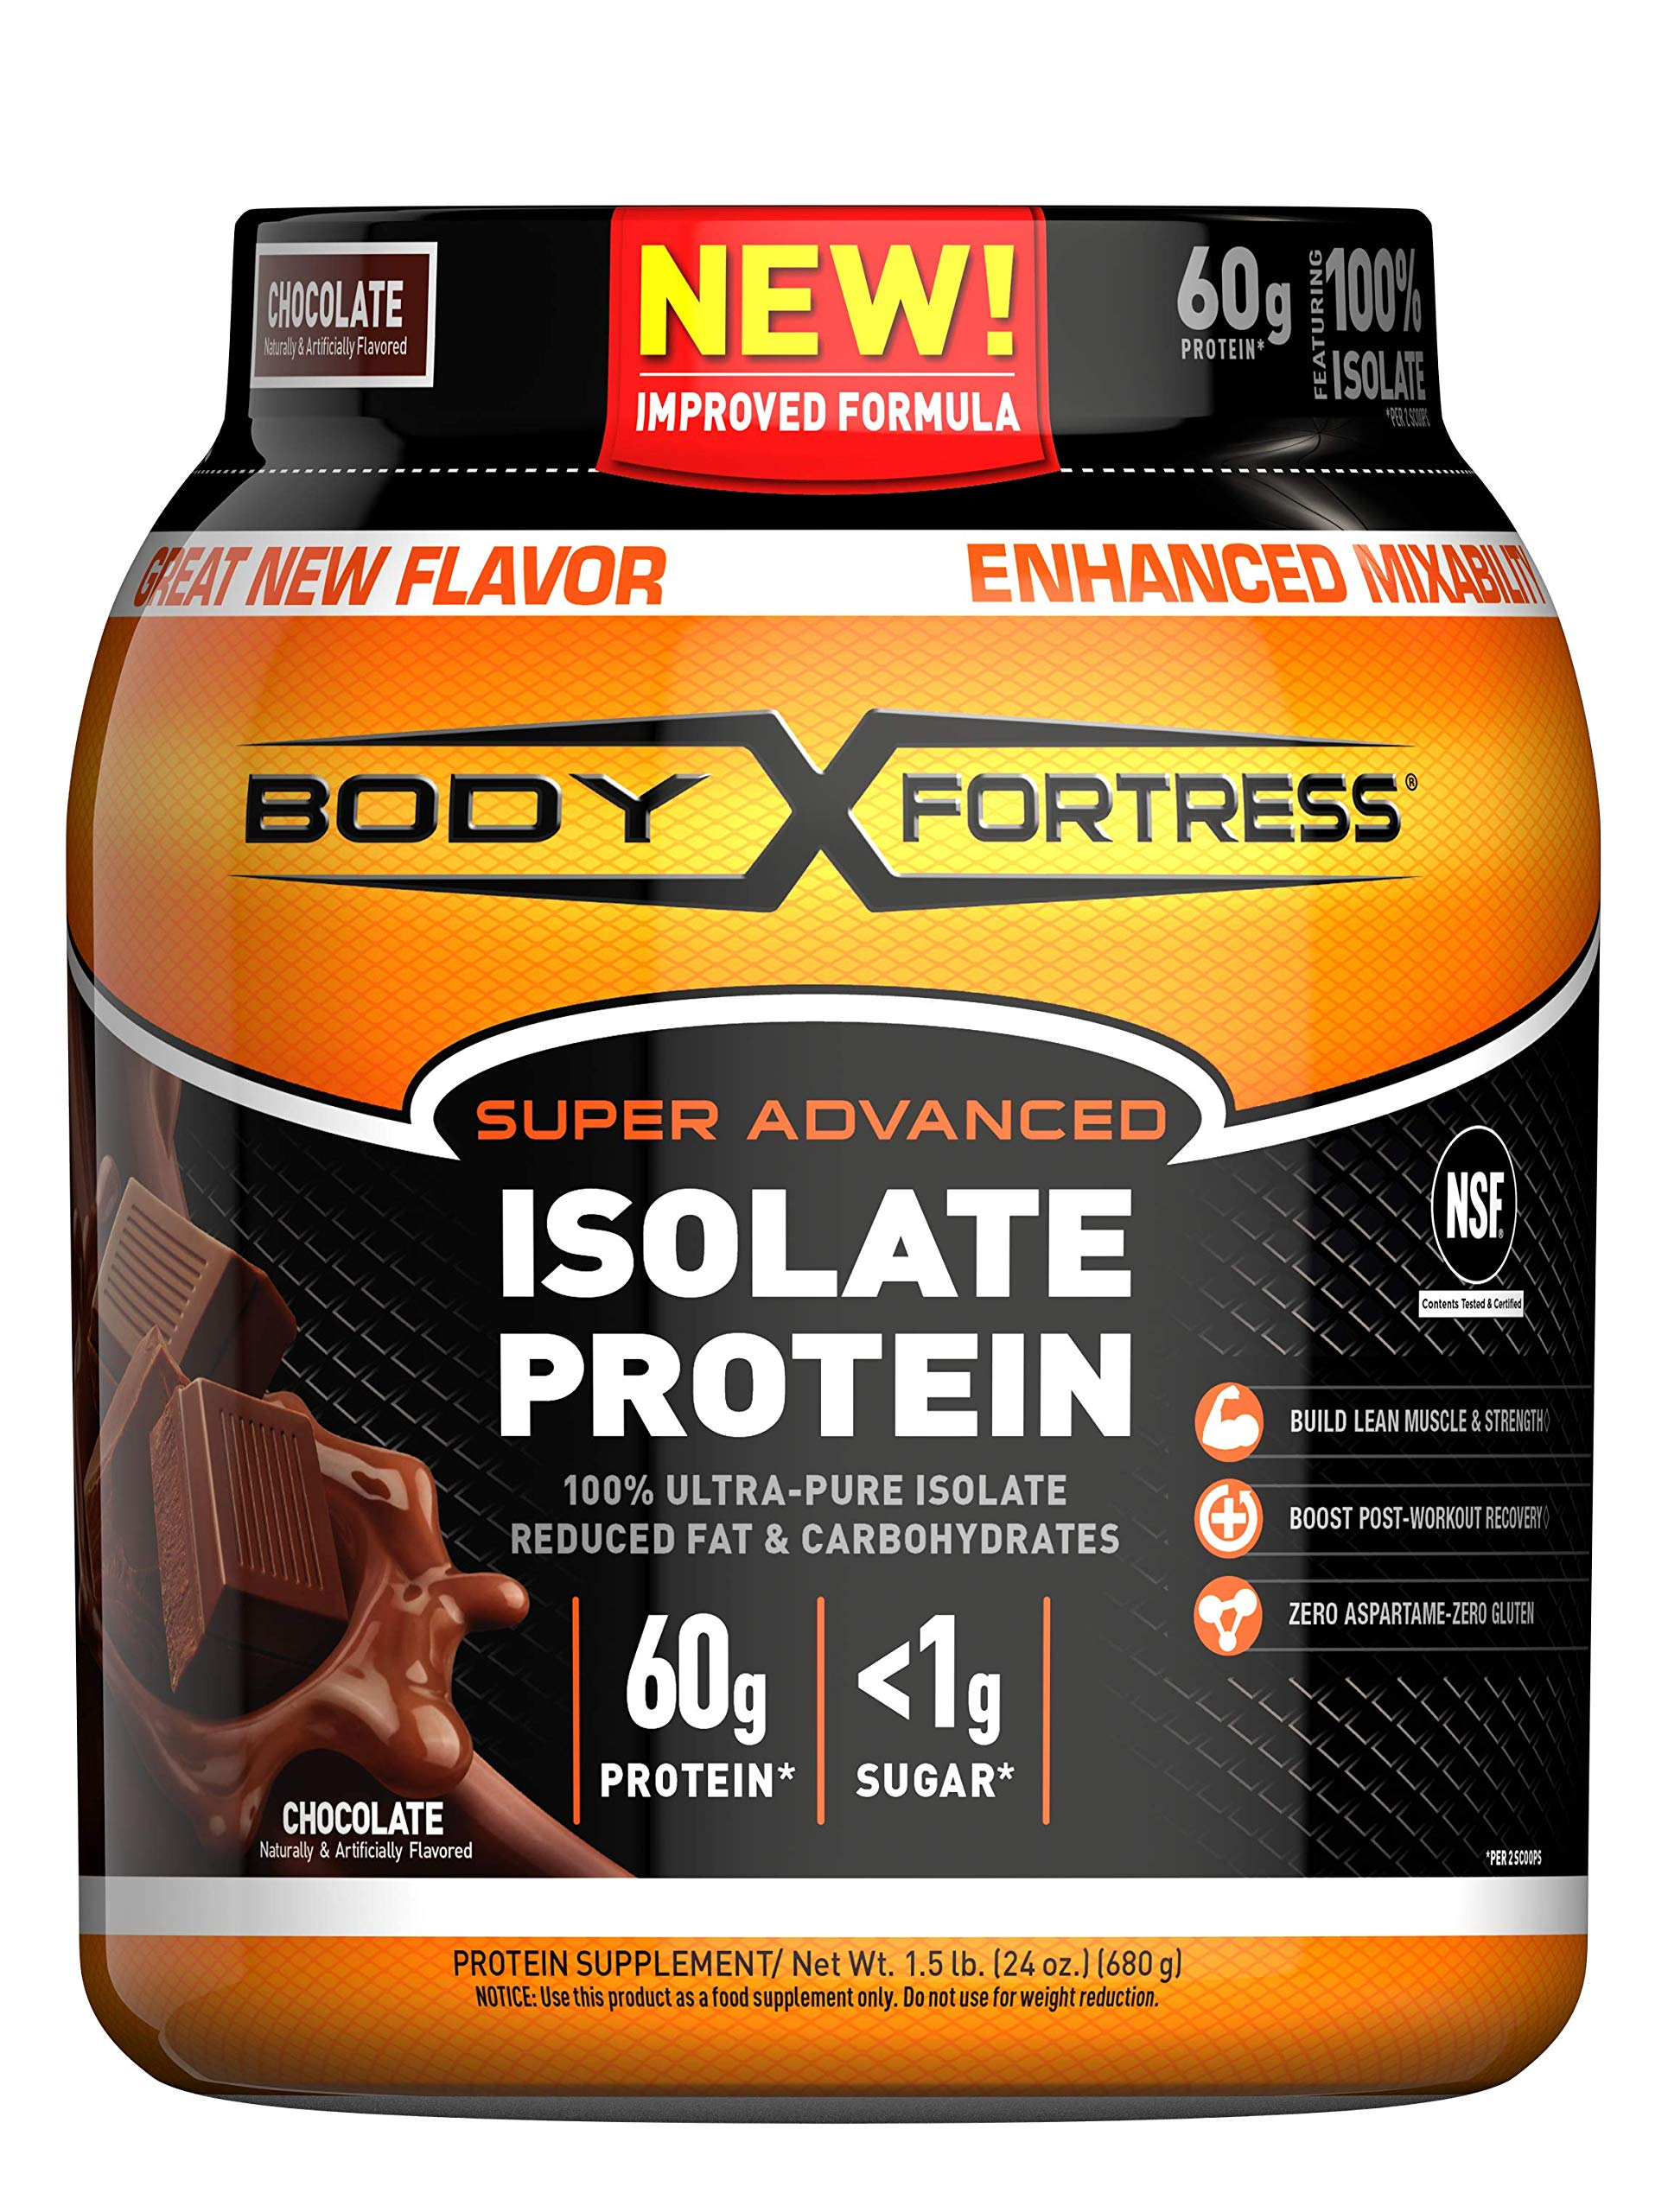 Body Fortress Super Advanced Whey Protein Isolate Powder, Gluten Free, Chocolate, 1.5 lbs (Packaging May Vary) by Body Fortress